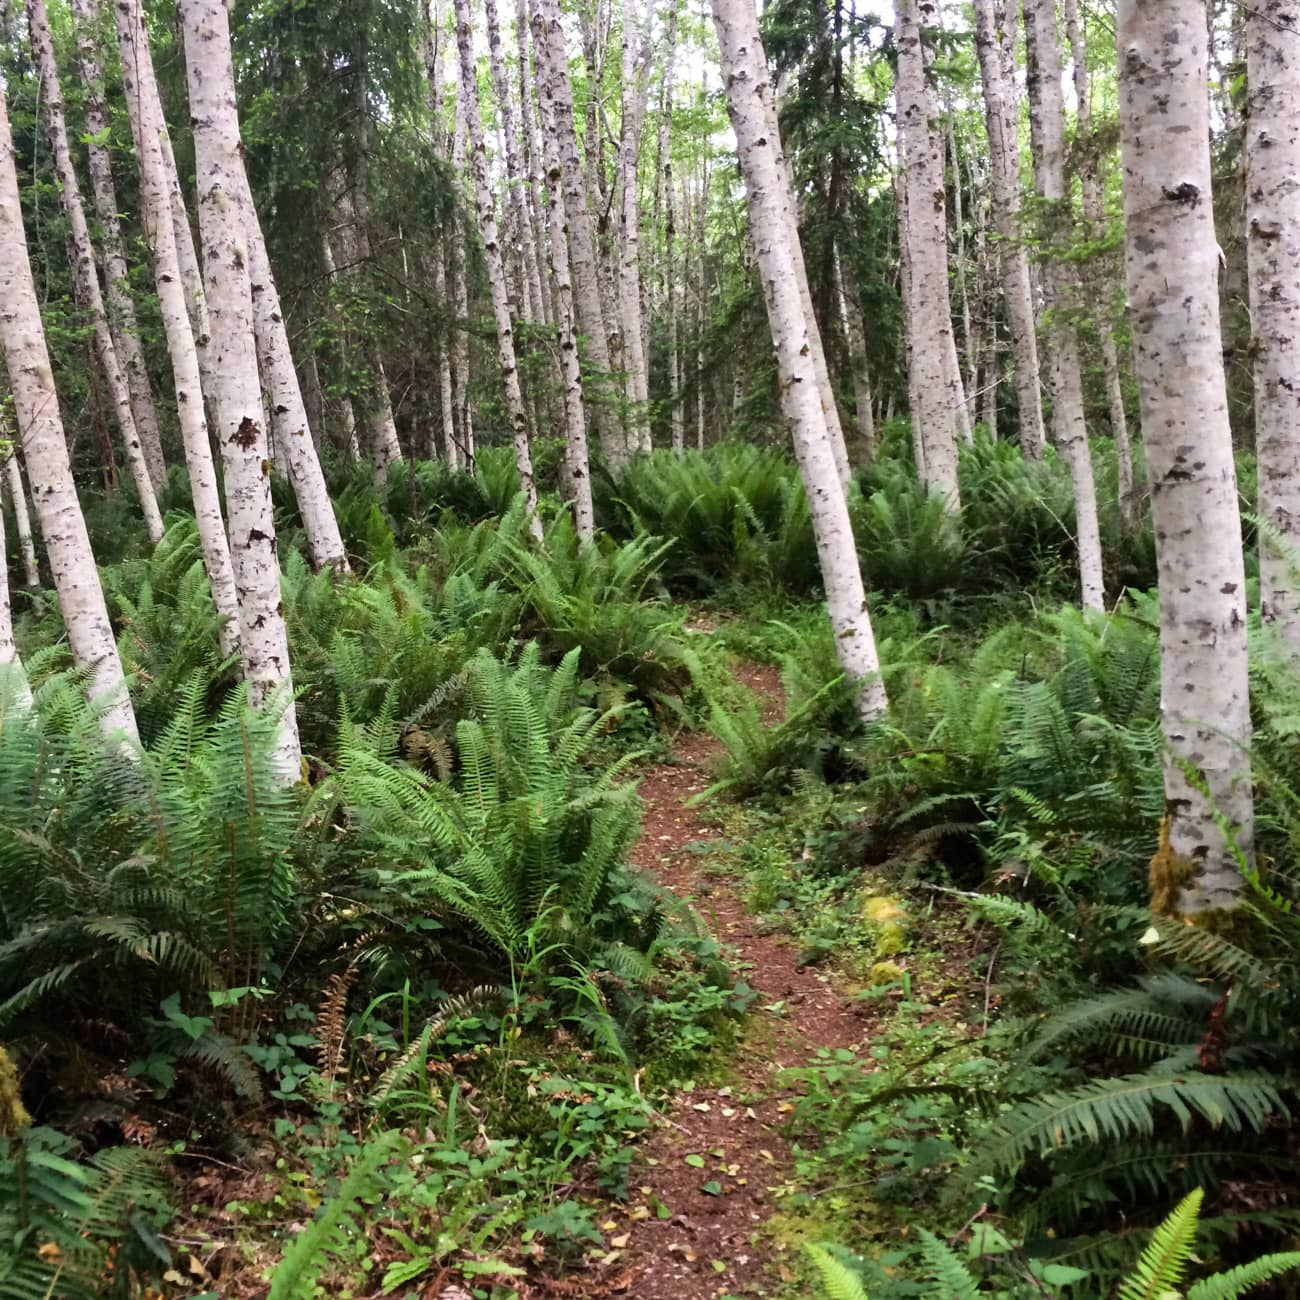 hiking trails near the hood canal stay snow free all winter, thanks to the low elevation